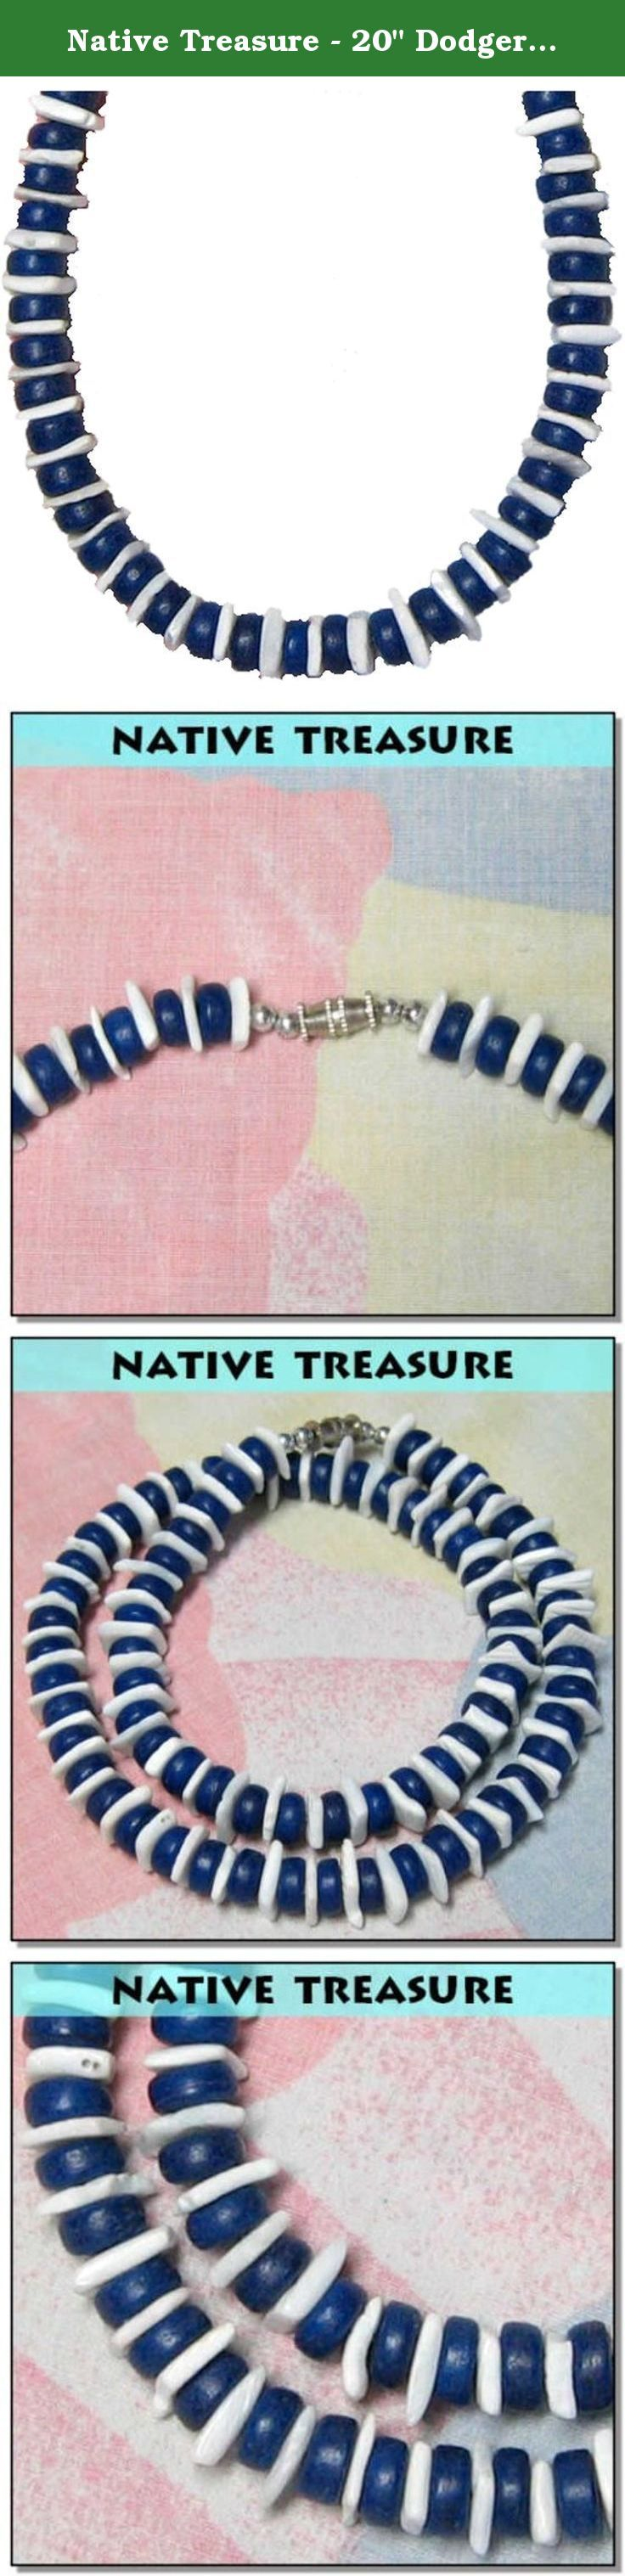 "Native Treasure - 20"" Dodger Blue Coco White Chips Puka Shell Necklace. This Highly Praised Native Treasure Authentic Tropical Jewelry Puka Shell Necklace is Beautifully Hand-crafted in our Tropical Jewelry Shop by our own Native Island Artisans using 8mm (5/16"") Hand-Sorted Super Class 'A' Quality Coco Beads and White Rose Chip Puka Clam Shells. .....It is our Longer 20"" length and it is ideal for Men, Women, Boys and Girls, Teens and Kids......Real Wood Coco Beads from Coconut Trees and..."